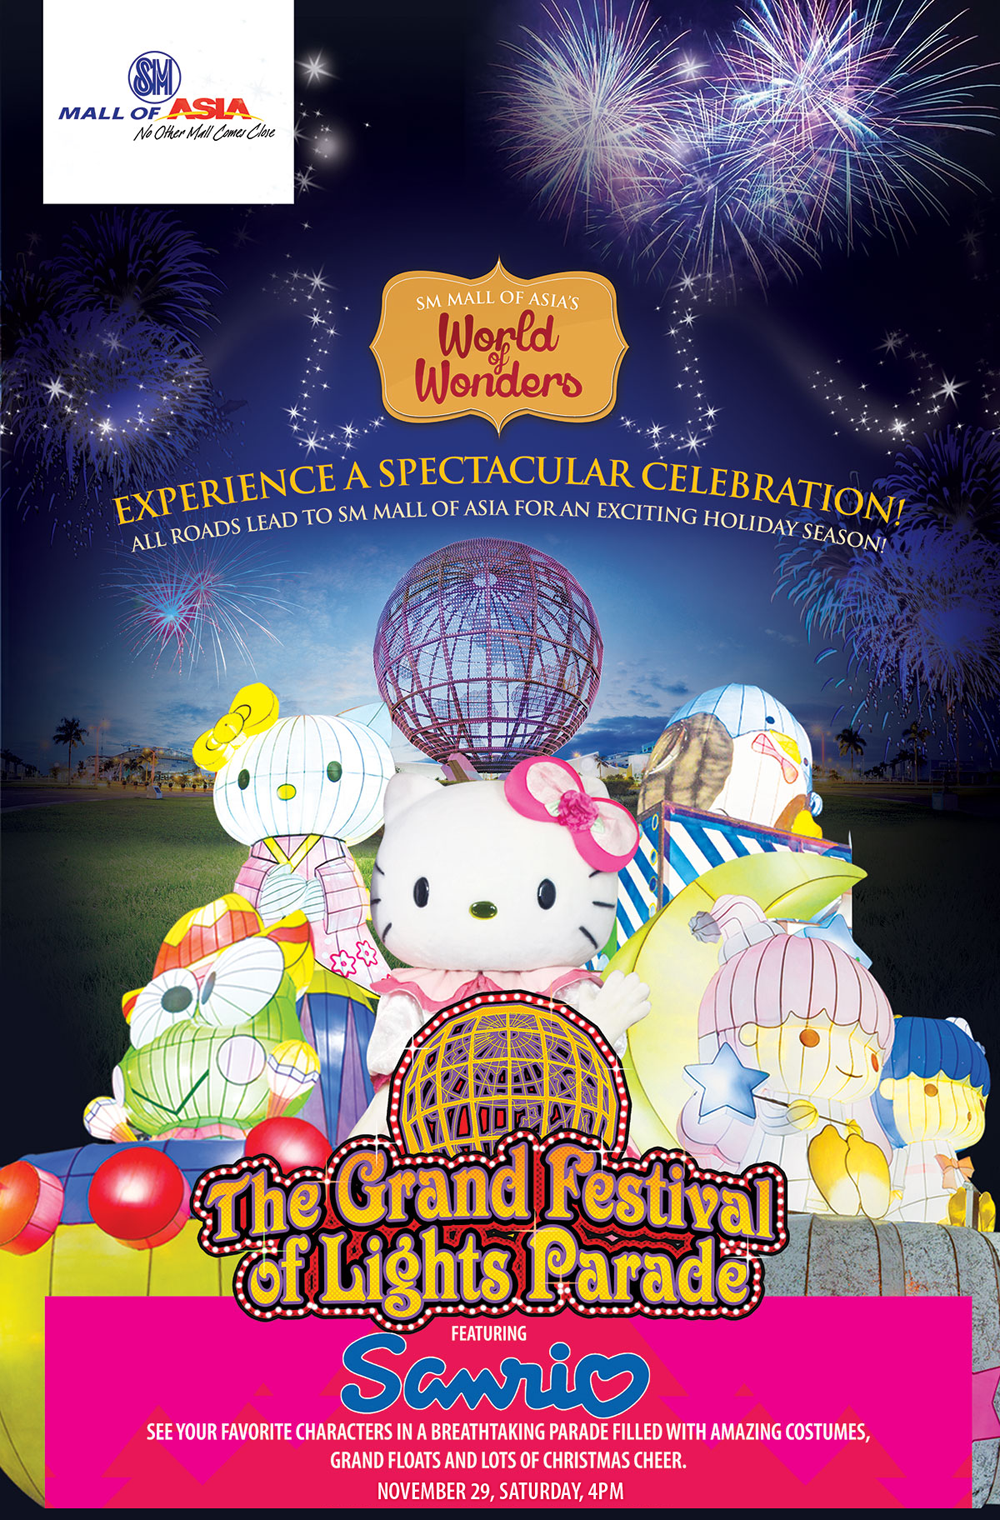 The Grand Festival of Lights